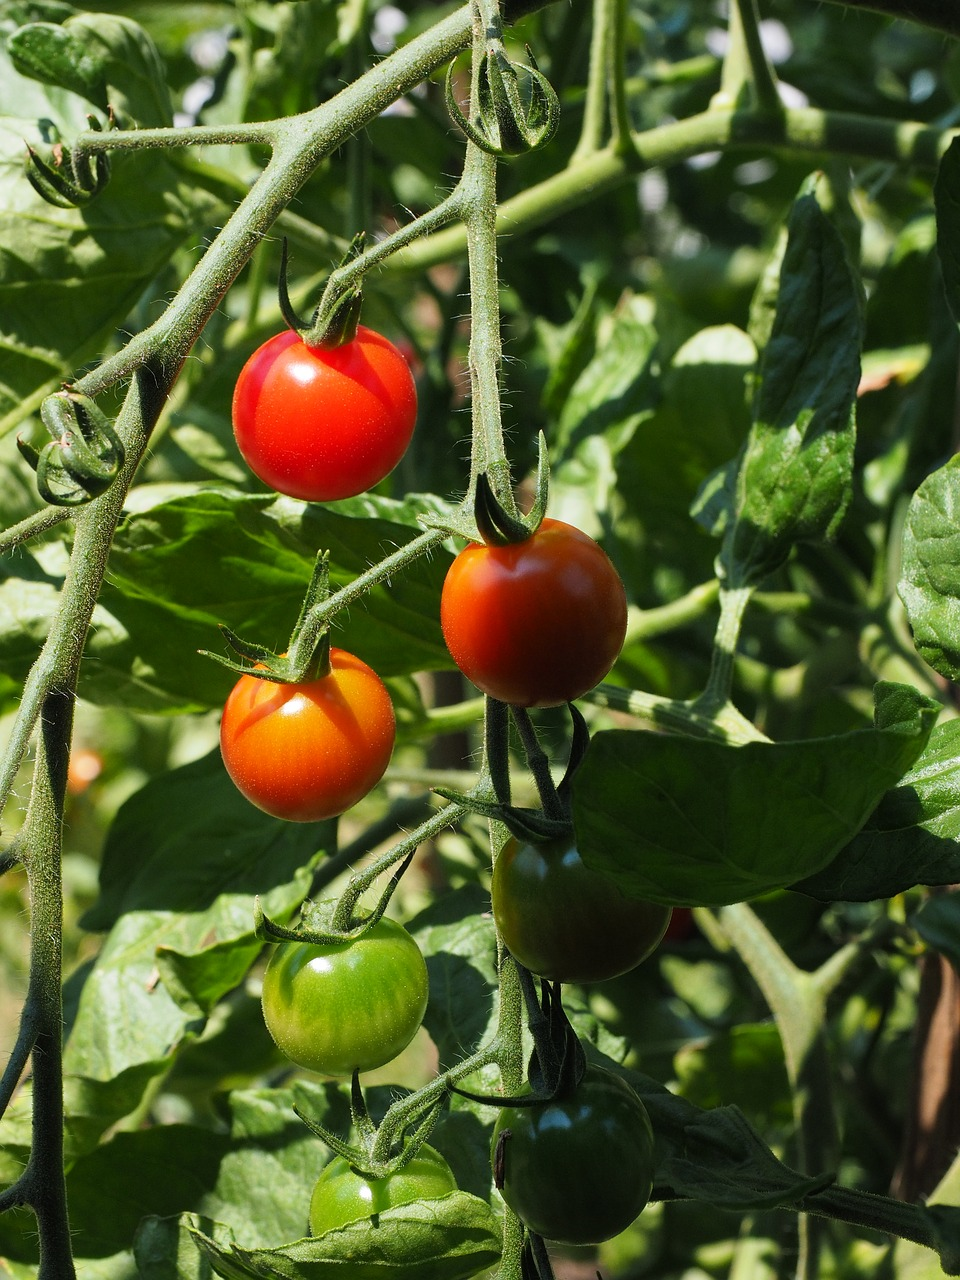 Our Fail-Proof, 6 Successful Step Guide on How to Ripen Green Tomatoes